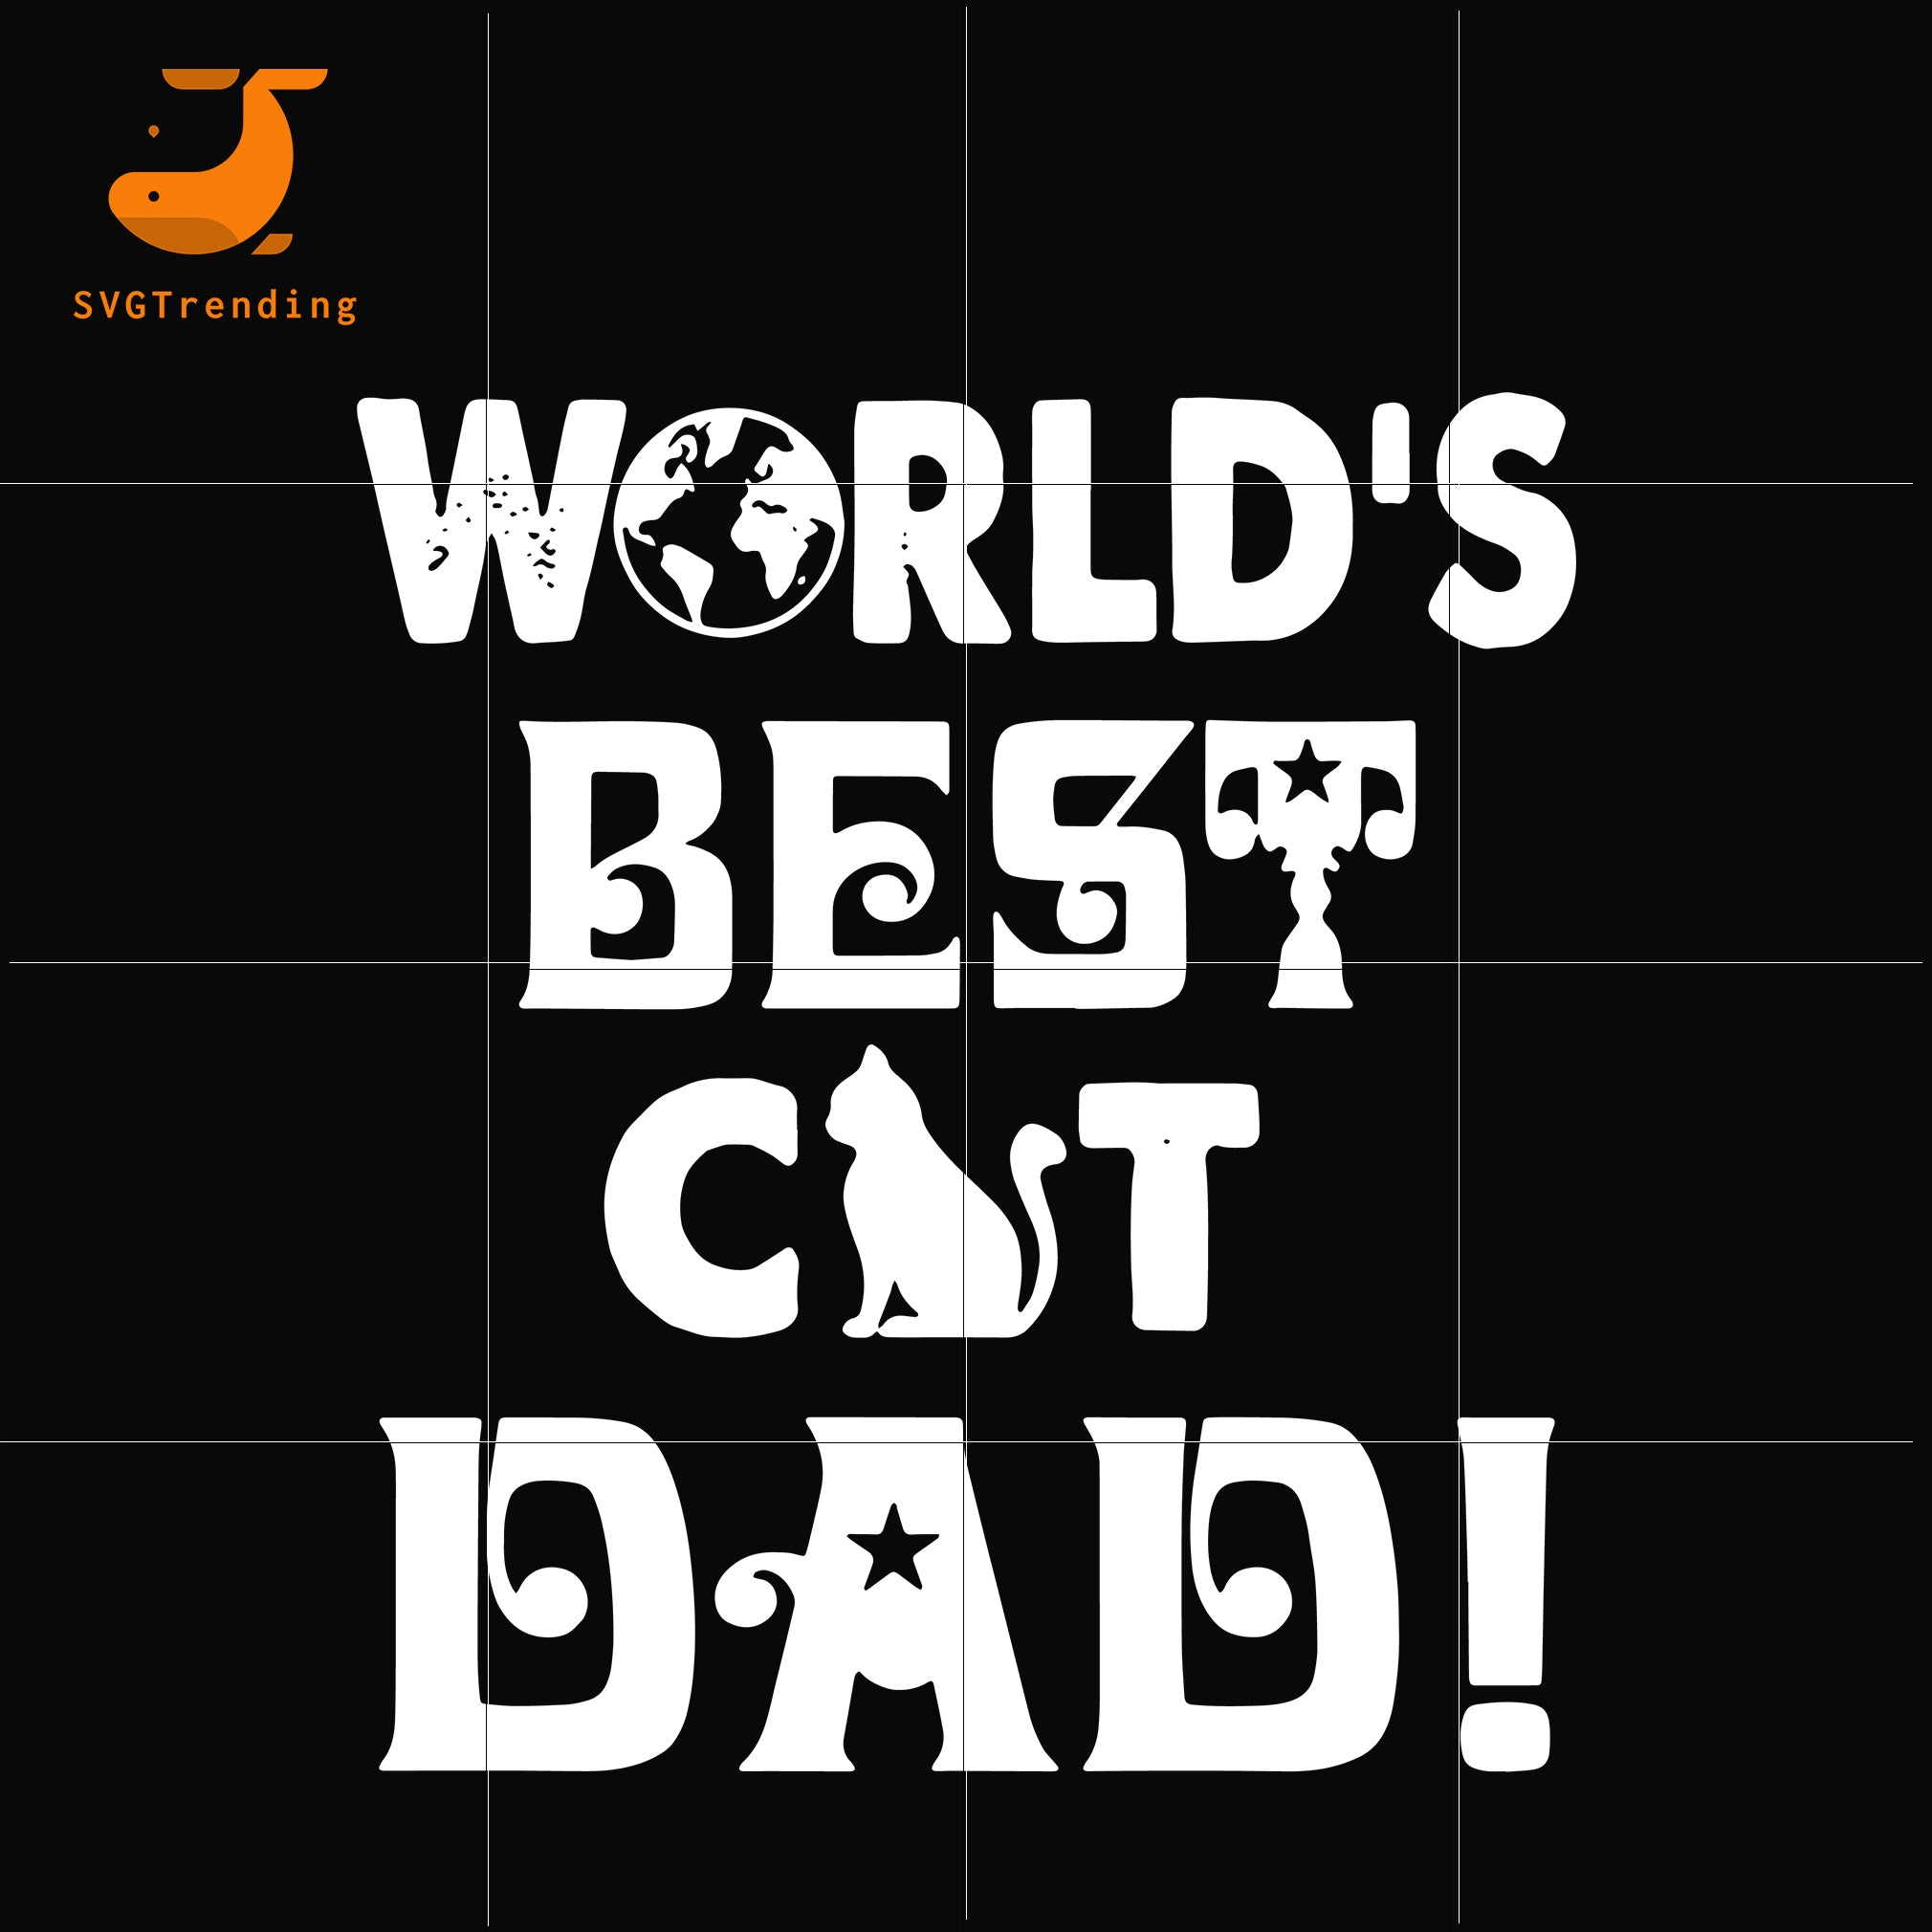 World's best cat dad svg, png, dxf, eps, digital file FTD43